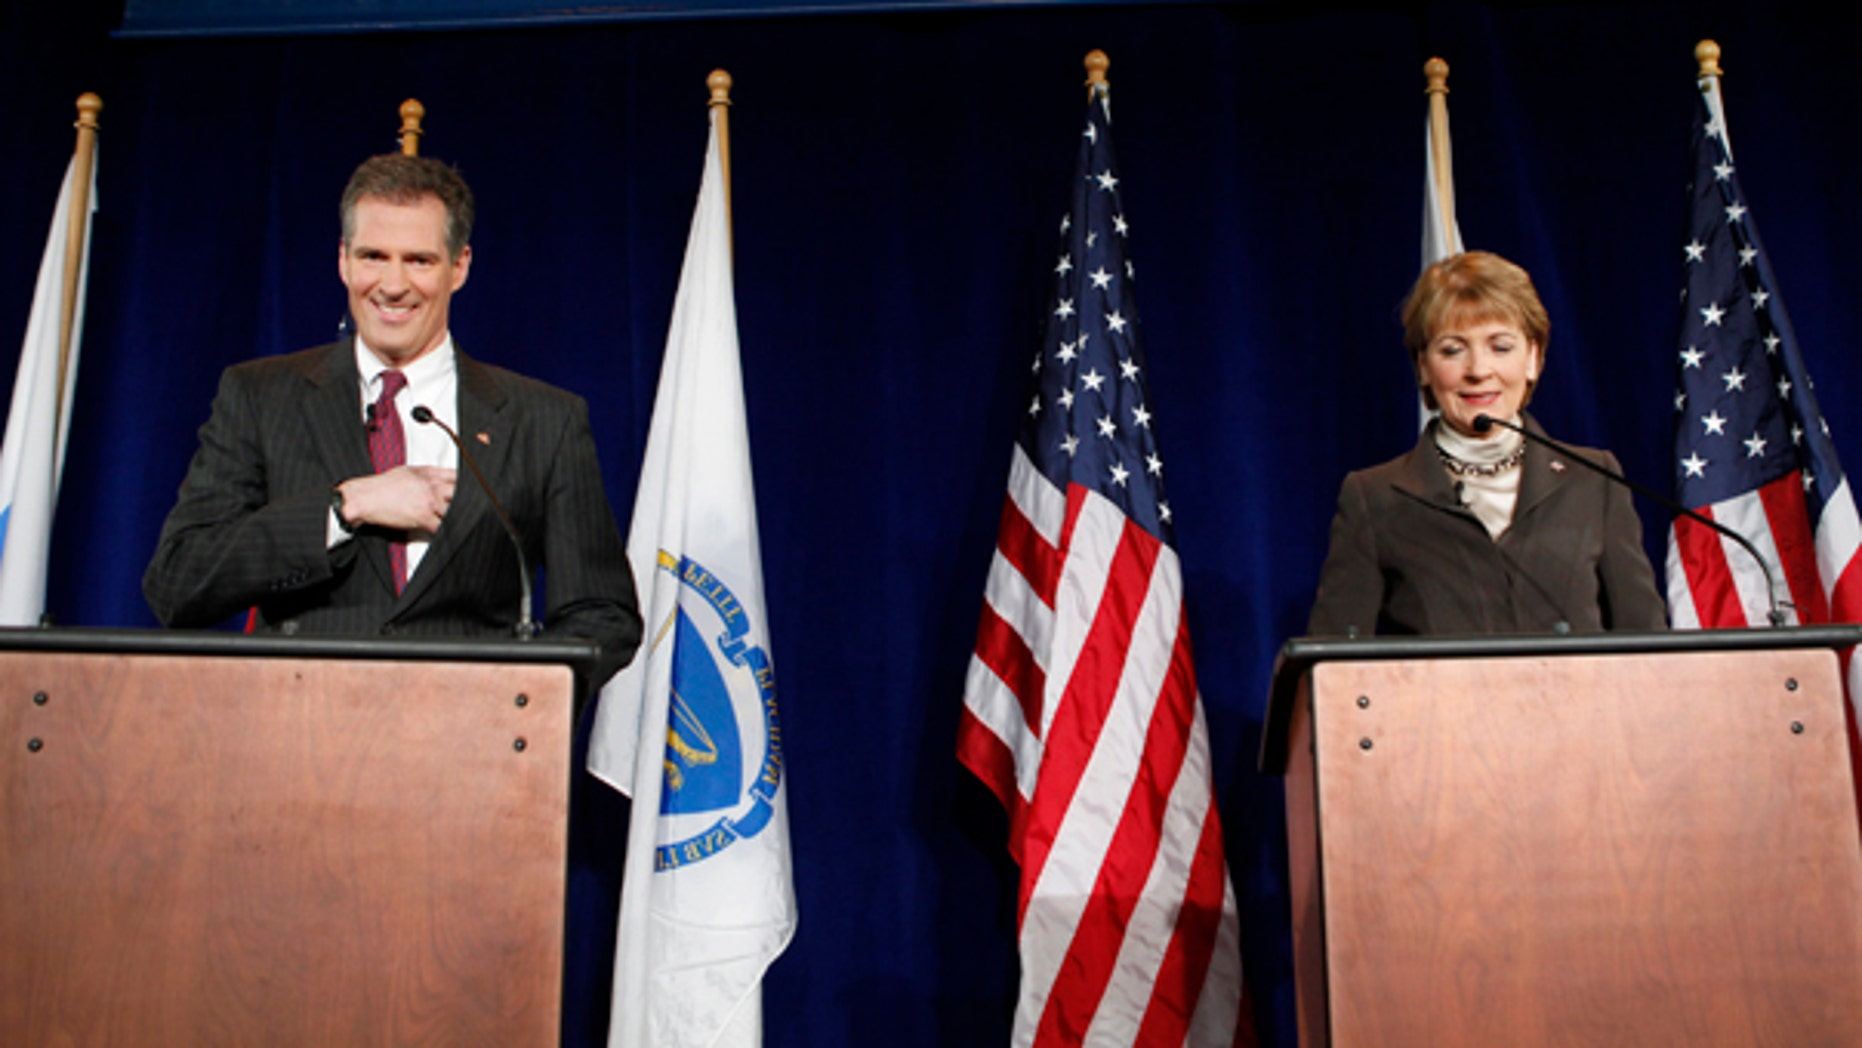 Monday: Republican Scott Brown and Democrat Martha Coakley make last minute preparations before a debate on the campus of the University of Massachusetts in Boston. (AP Photo)